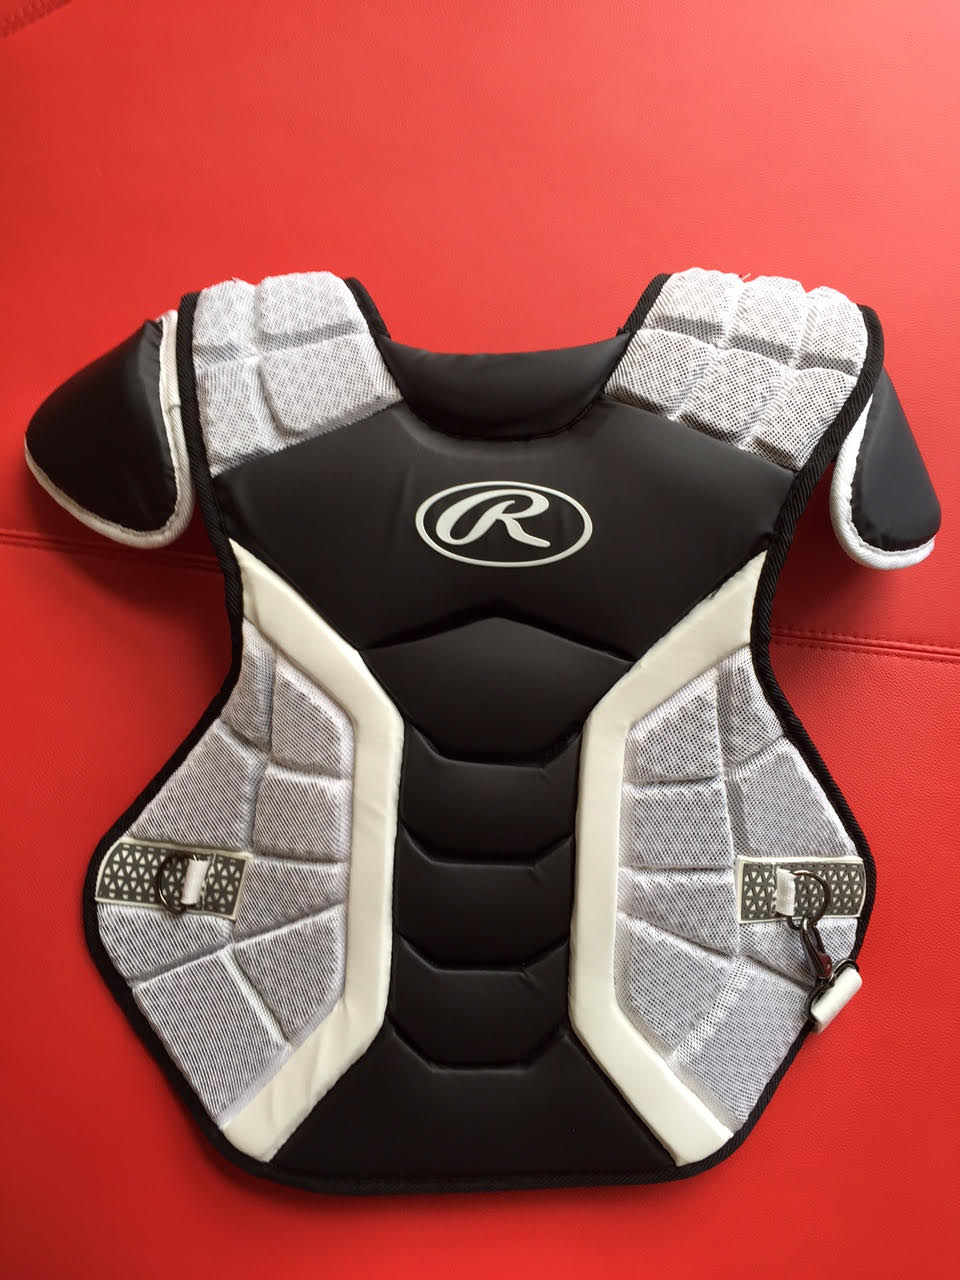 rawlings-pro-preferred-chest-protector